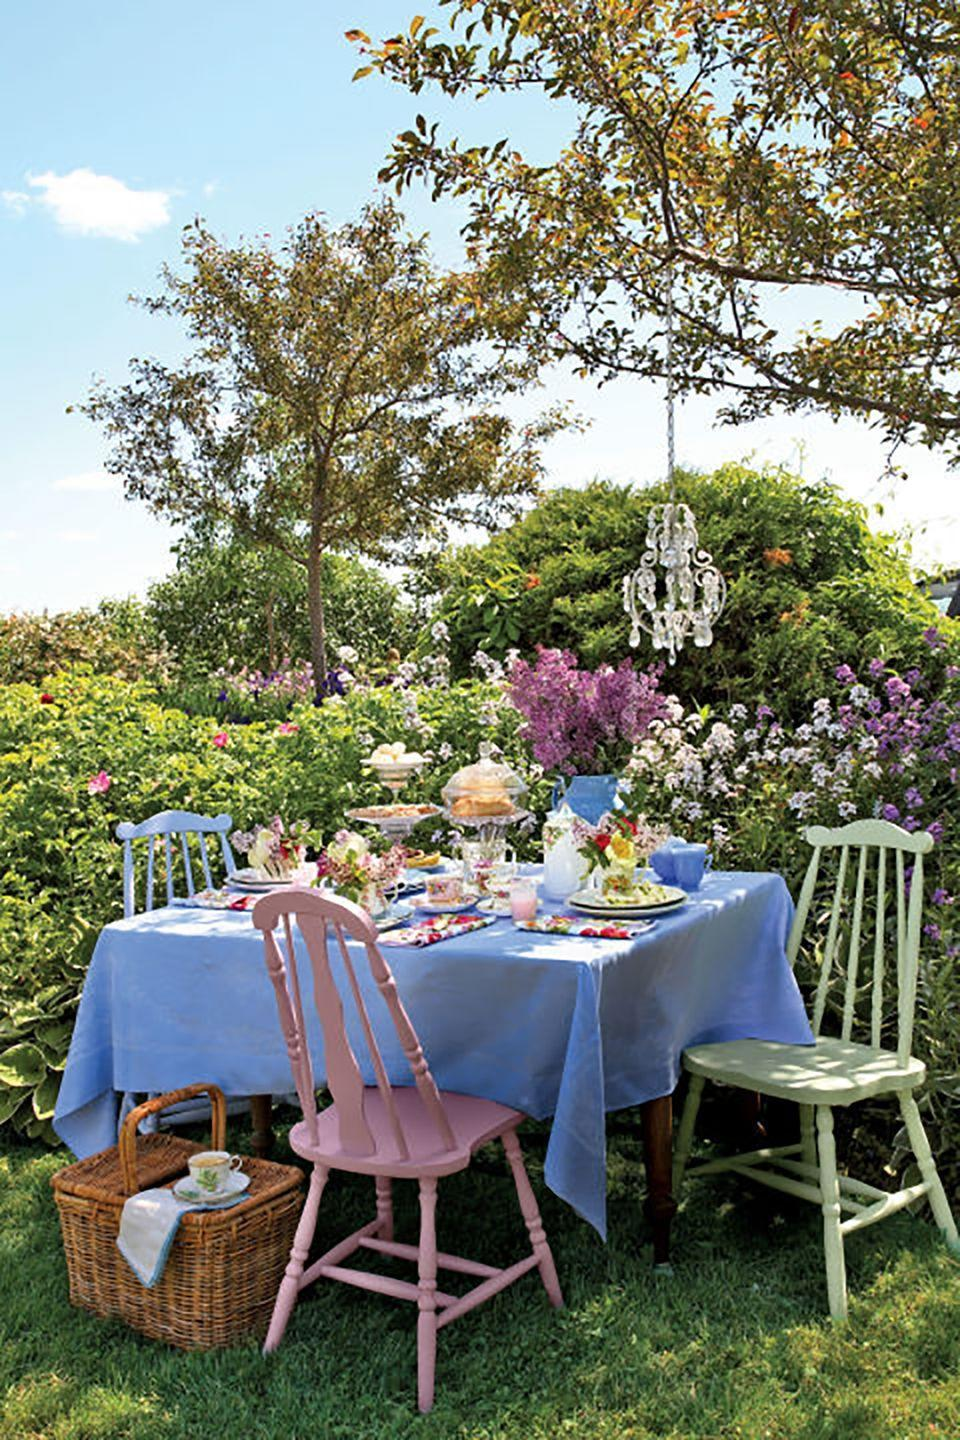 "<p>Mother's Day falls during that magical time of year when the weather is pleasantly warm (but not hot) and the trees and flowers are blooming, so why not move the party outside with a garden tea party—either together or remotely. Send along a <a href=""https://www.harryanddavid.com/h/gift-baskets-tower-boxes/specialty-gift-baskets/27422"" rel=""nofollow noopener"" target=""_blank"" data-ylk=""slk:snack-filled Country Living gift basket"" class=""link rapid-noclick-resp"">snack-filled Country Living gift basket</a>, or even better: Order one basket for yourself, and send one to her, and you can nibble on lemon shortbread cookies simultaneously from pretty al fresco settings, even if you can't be in the same place.<a href=""https://www.countryliving.com/food-drinks/g2608/afternoon-tea-sandwiches/"" rel=""nofollow noopener"" target=""_blank"" data-ylk=""slk:"" class=""link rapid-noclick-resp""><br></a></p><p><strong><a href=""https://www.countryliving.com/entertaining/g21/mother-tea-party-0507/"" rel=""nofollow noopener"" target=""_blank"" data-ylk=""slk:Get more ideas for a Mother's Day tea party."" class=""link rapid-noclick-resp"">Get more ideas for a Mother's Day tea party.</a></strong></p>"